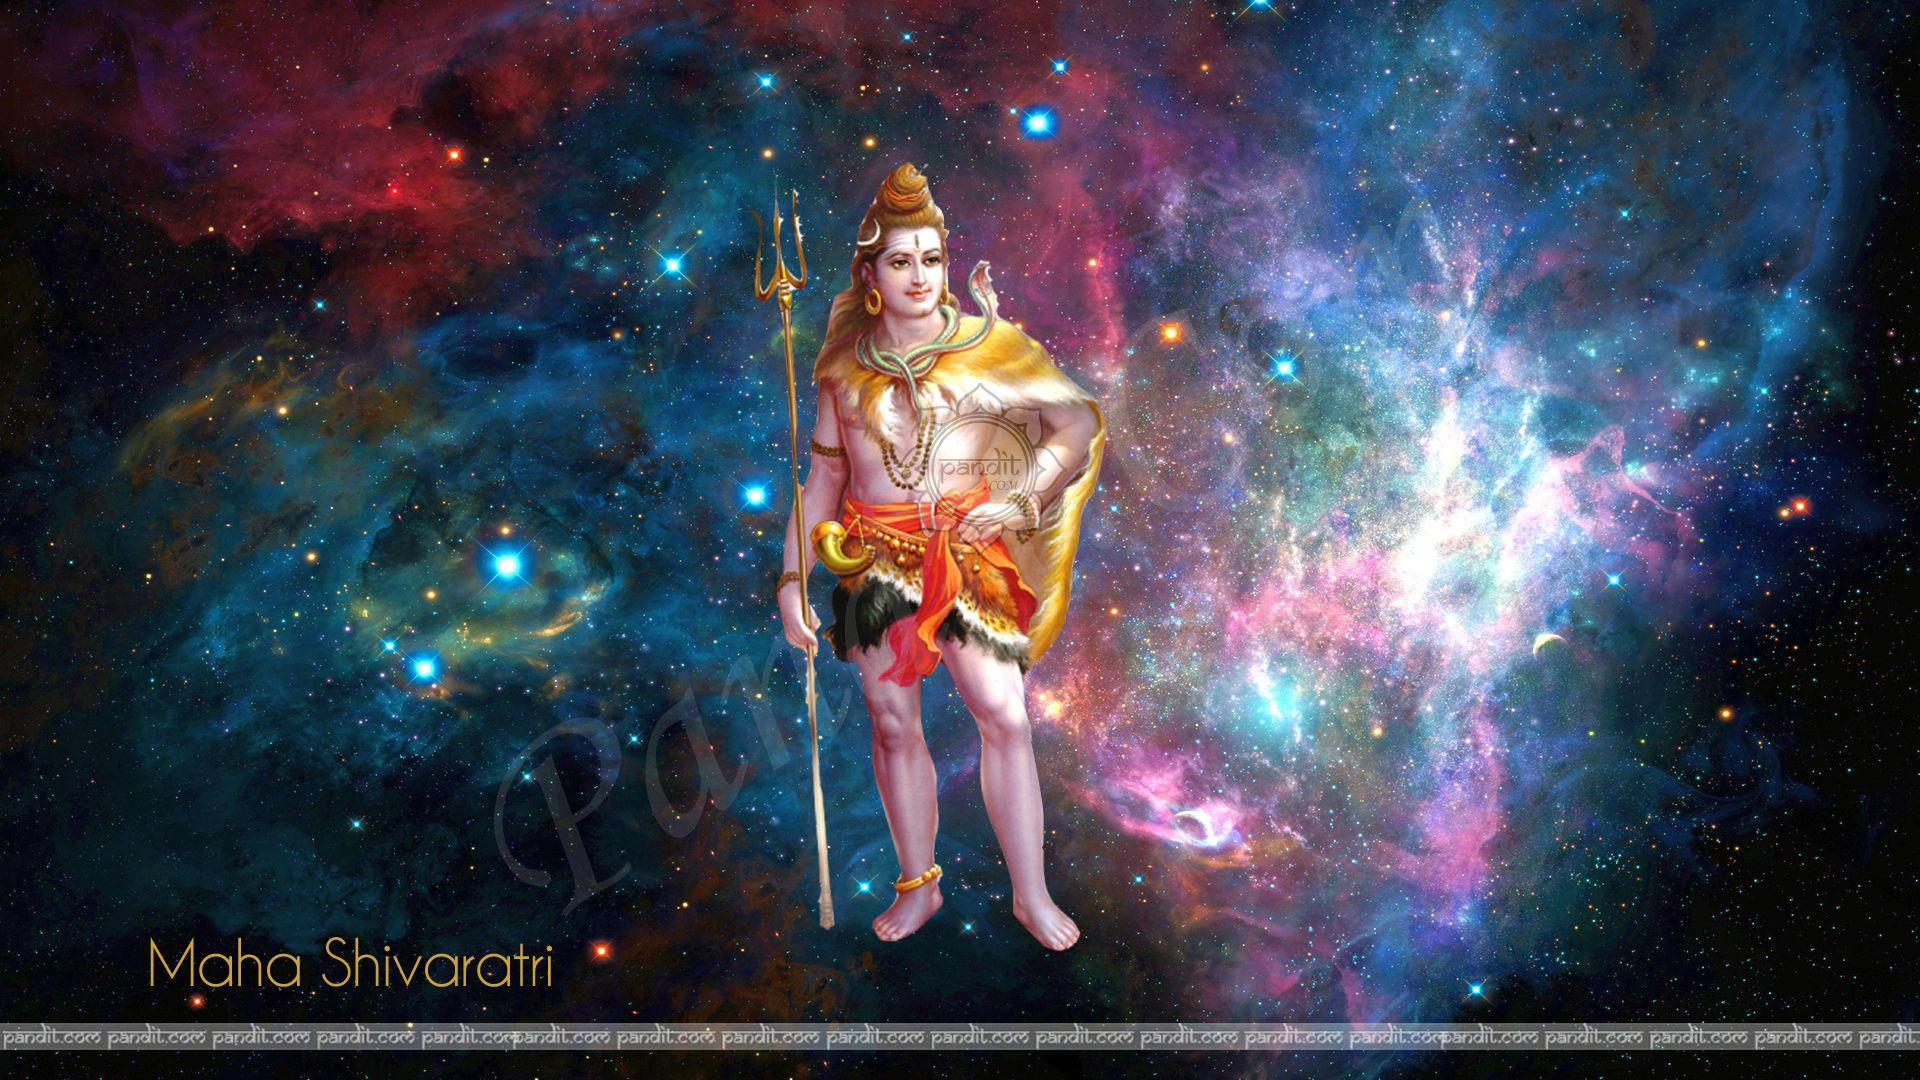 Maha Shivaratri Wallpapers | Pandit.com